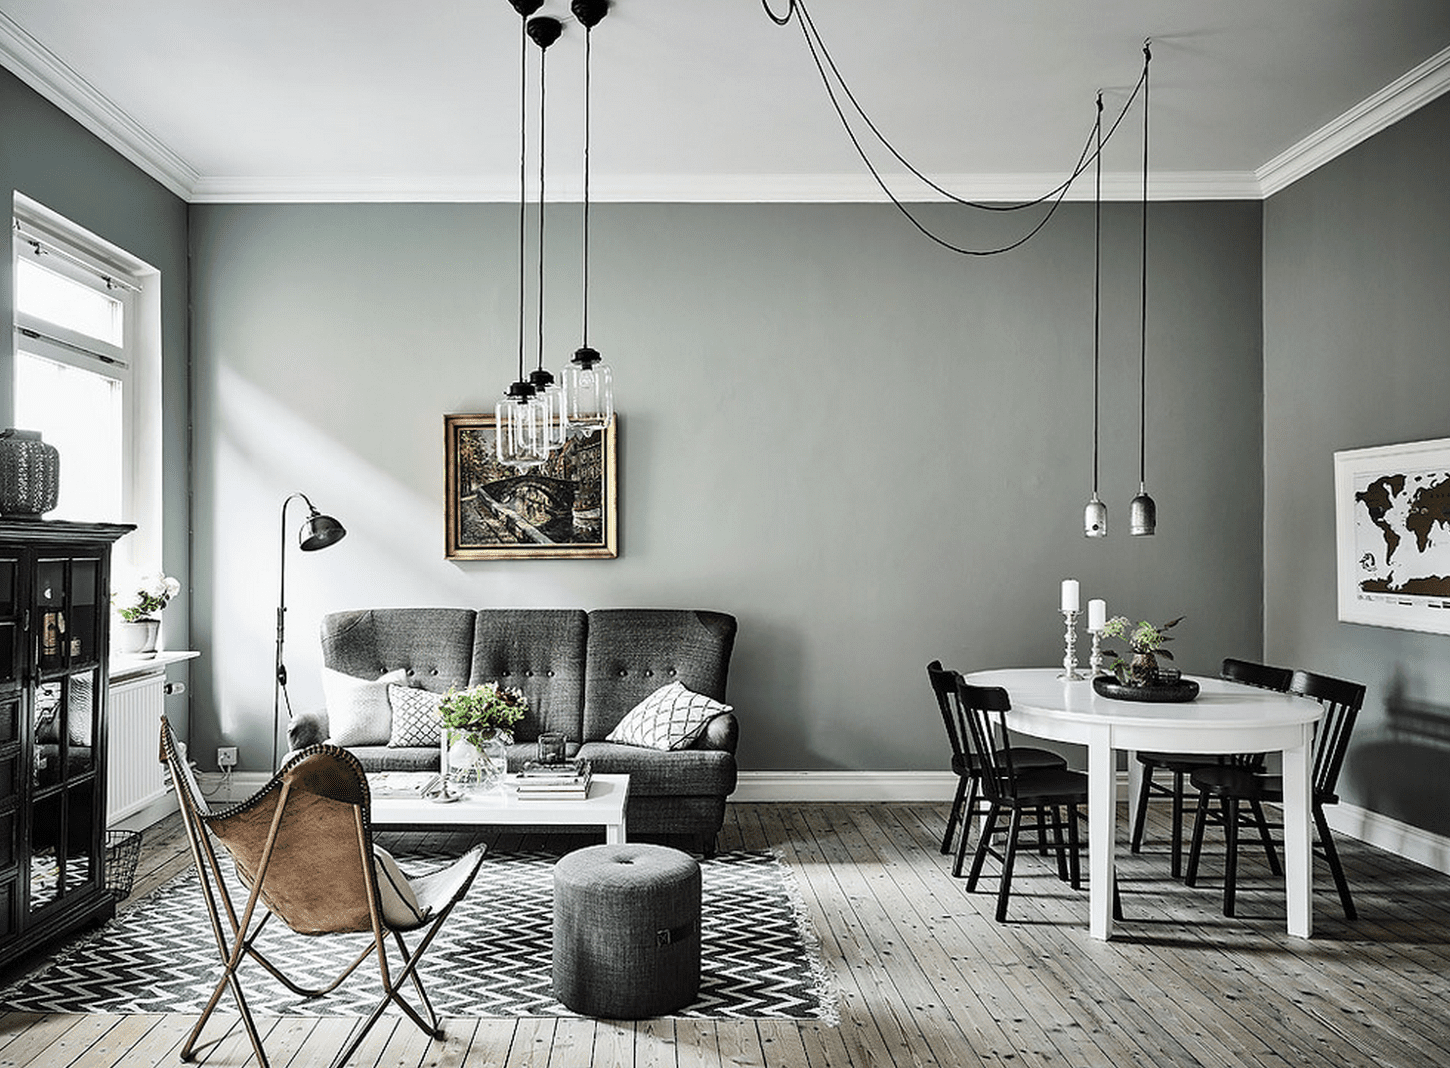 Black White And Grey Living Room Design Le Gris Vert Dans La Déco Salon Scandinave Industriel